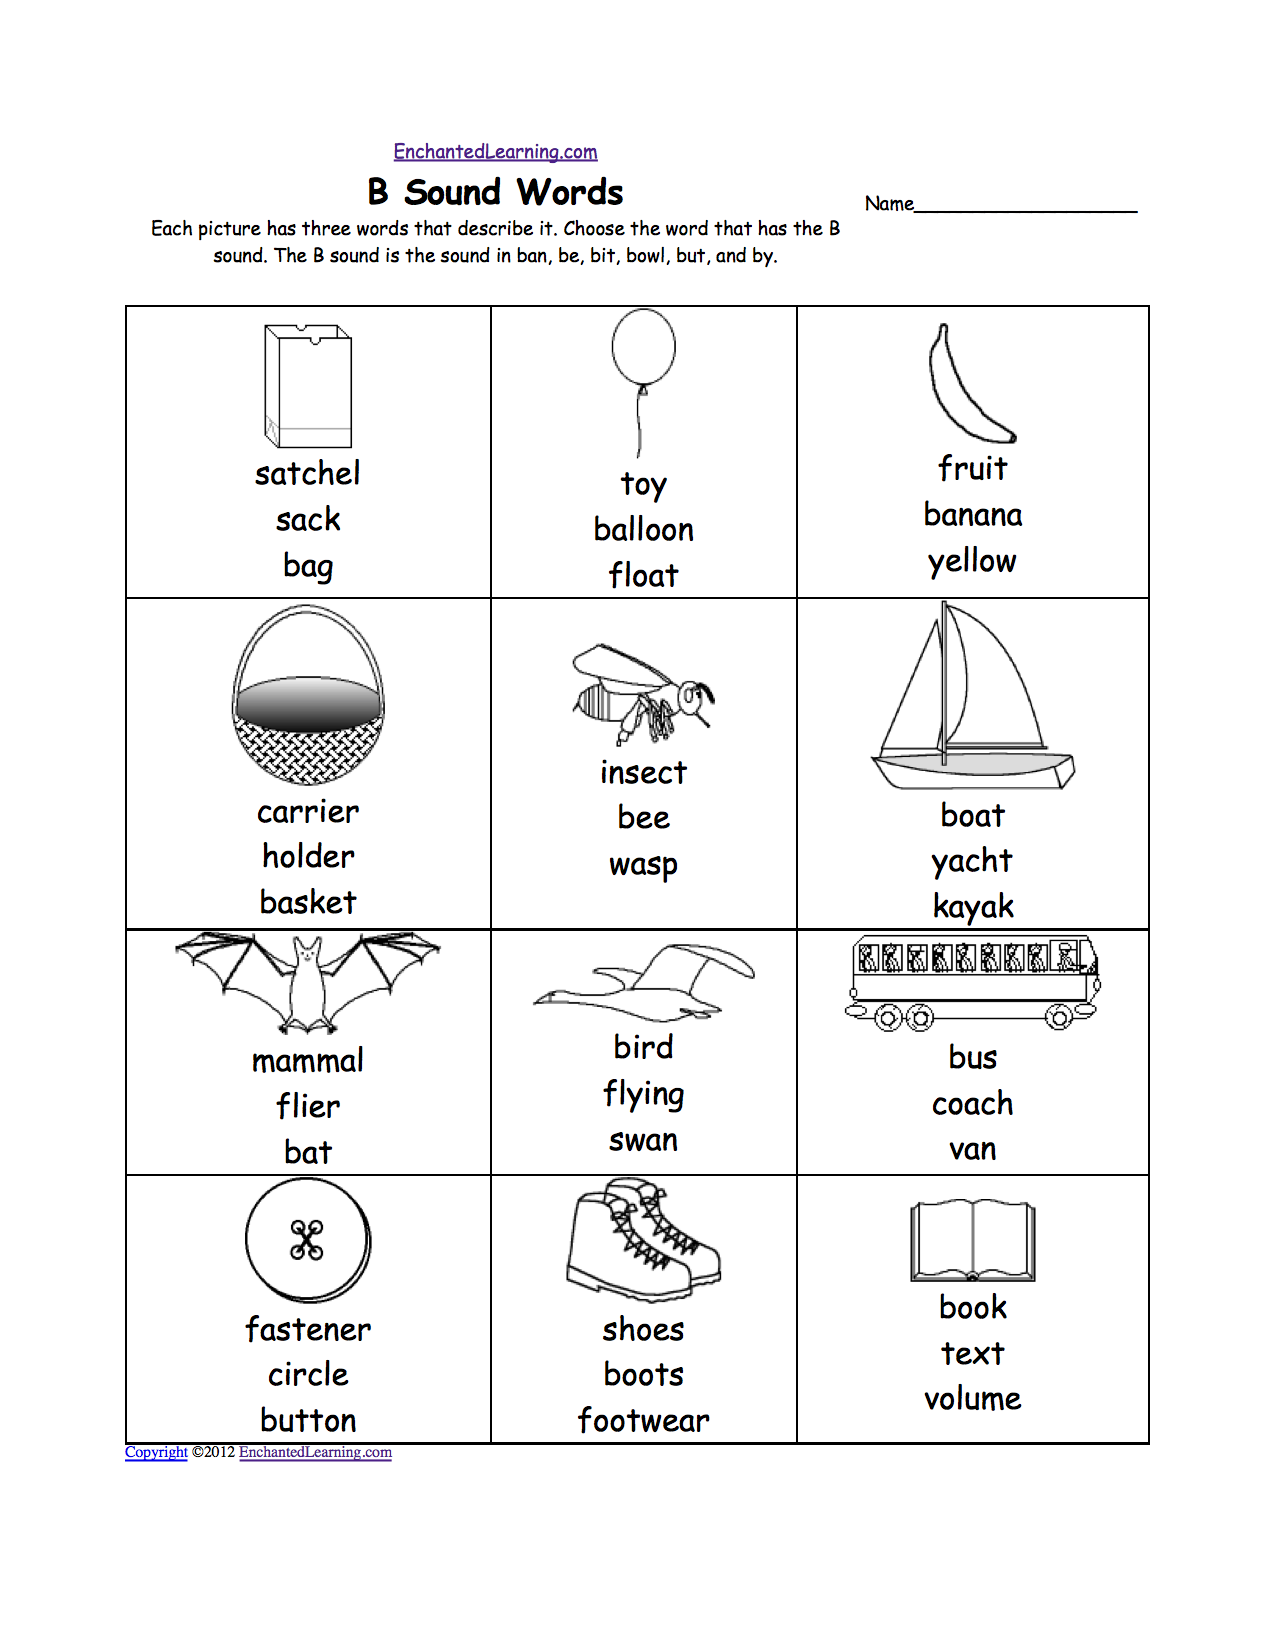 Weirdmailus  Scenic Phonics Worksheets Multiple Choice Worksheets To Print  With Luxury Quotbquot Sound Phonics Worksheet Multiple Choice Each Picture Has Three Words That Describe It Choose The Word That Has A Quotbquot Sound The Quotbquot Sound Is The Sound  With Cool Social Studies Worksheets Grade  Also Science Energy Worksheets In Addition Salamander Math Worksheets And Finding Area Of A Rectangle Worksheets As Well As Drawing Conclusions Worksheets St Grade Additionally Direct Quotations Worksheet From Enchantedlearningcom With Weirdmailus  Luxury Phonics Worksheets Multiple Choice Worksheets To Print  With Cool Quotbquot Sound Phonics Worksheet Multiple Choice Each Picture Has Three Words That Describe It Choose The Word That Has A Quotbquot Sound The Quotbquot Sound Is The Sound  And Scenic Social Studies Worksheets Grade  Also Science Energy Worksheets In Addition Salamander Math Worksheets From Enchantedlearningcom